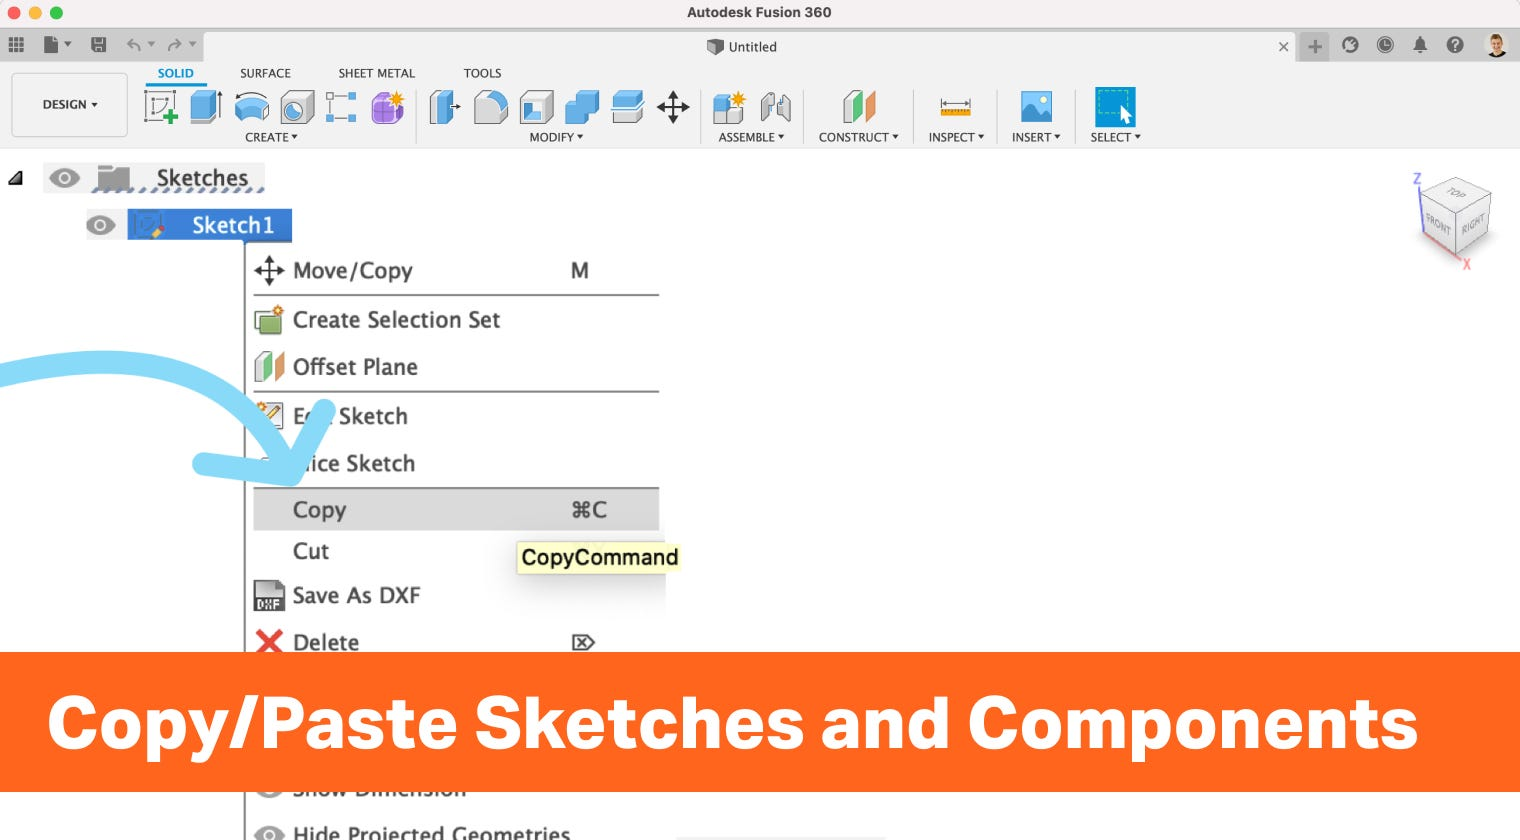 How to Copy and Paste Sketches and Components in Autodesk Fusion 360